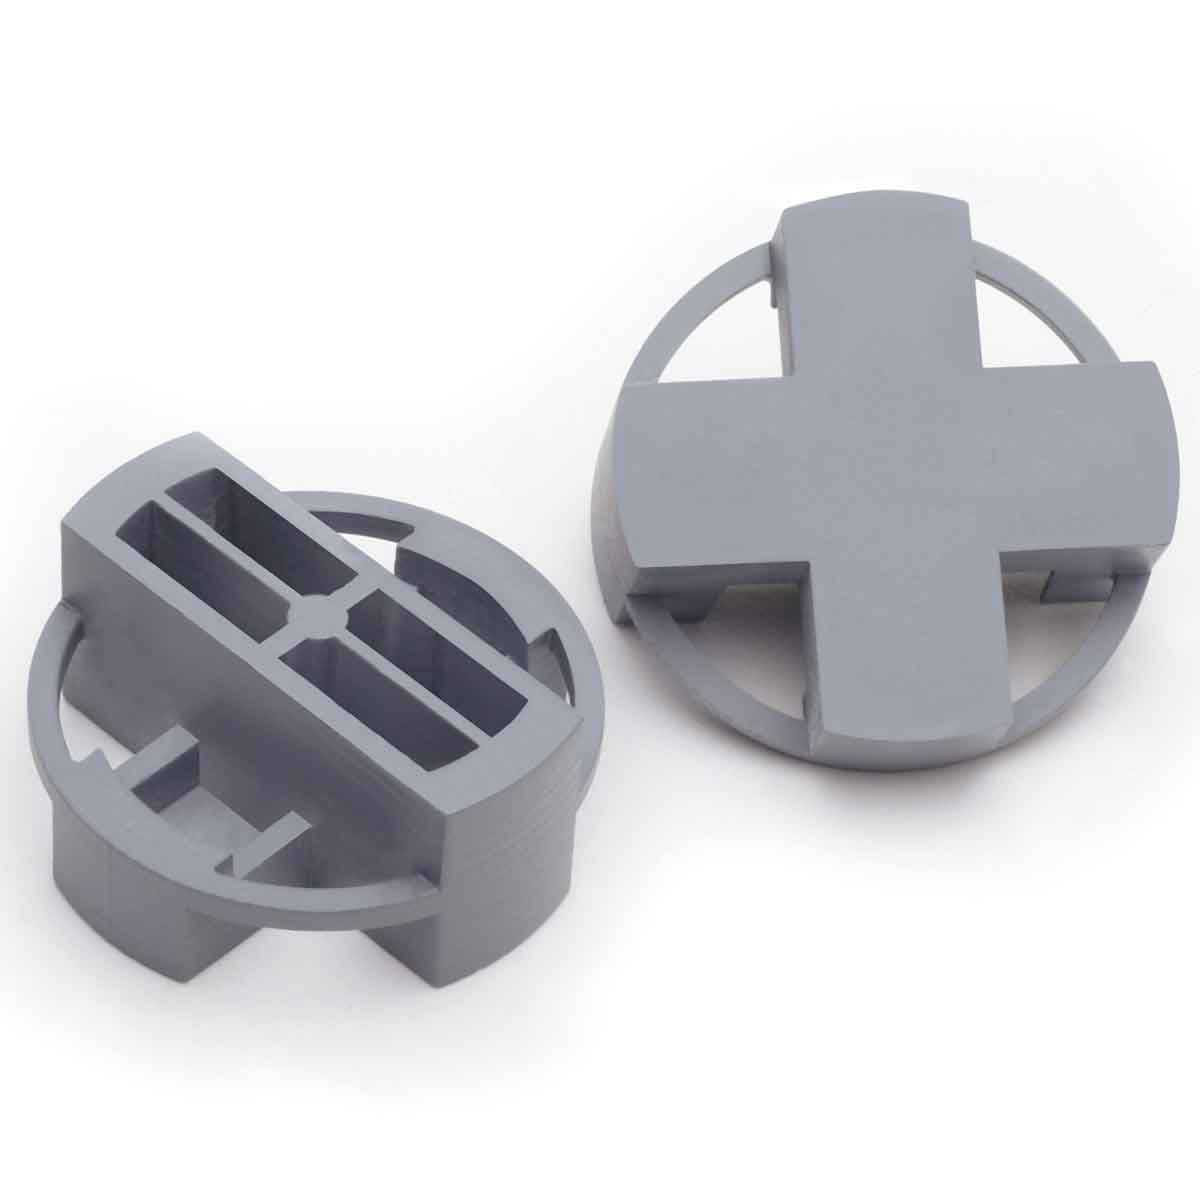 Gray Tavy 4-Corner View Tile Spacers 1007